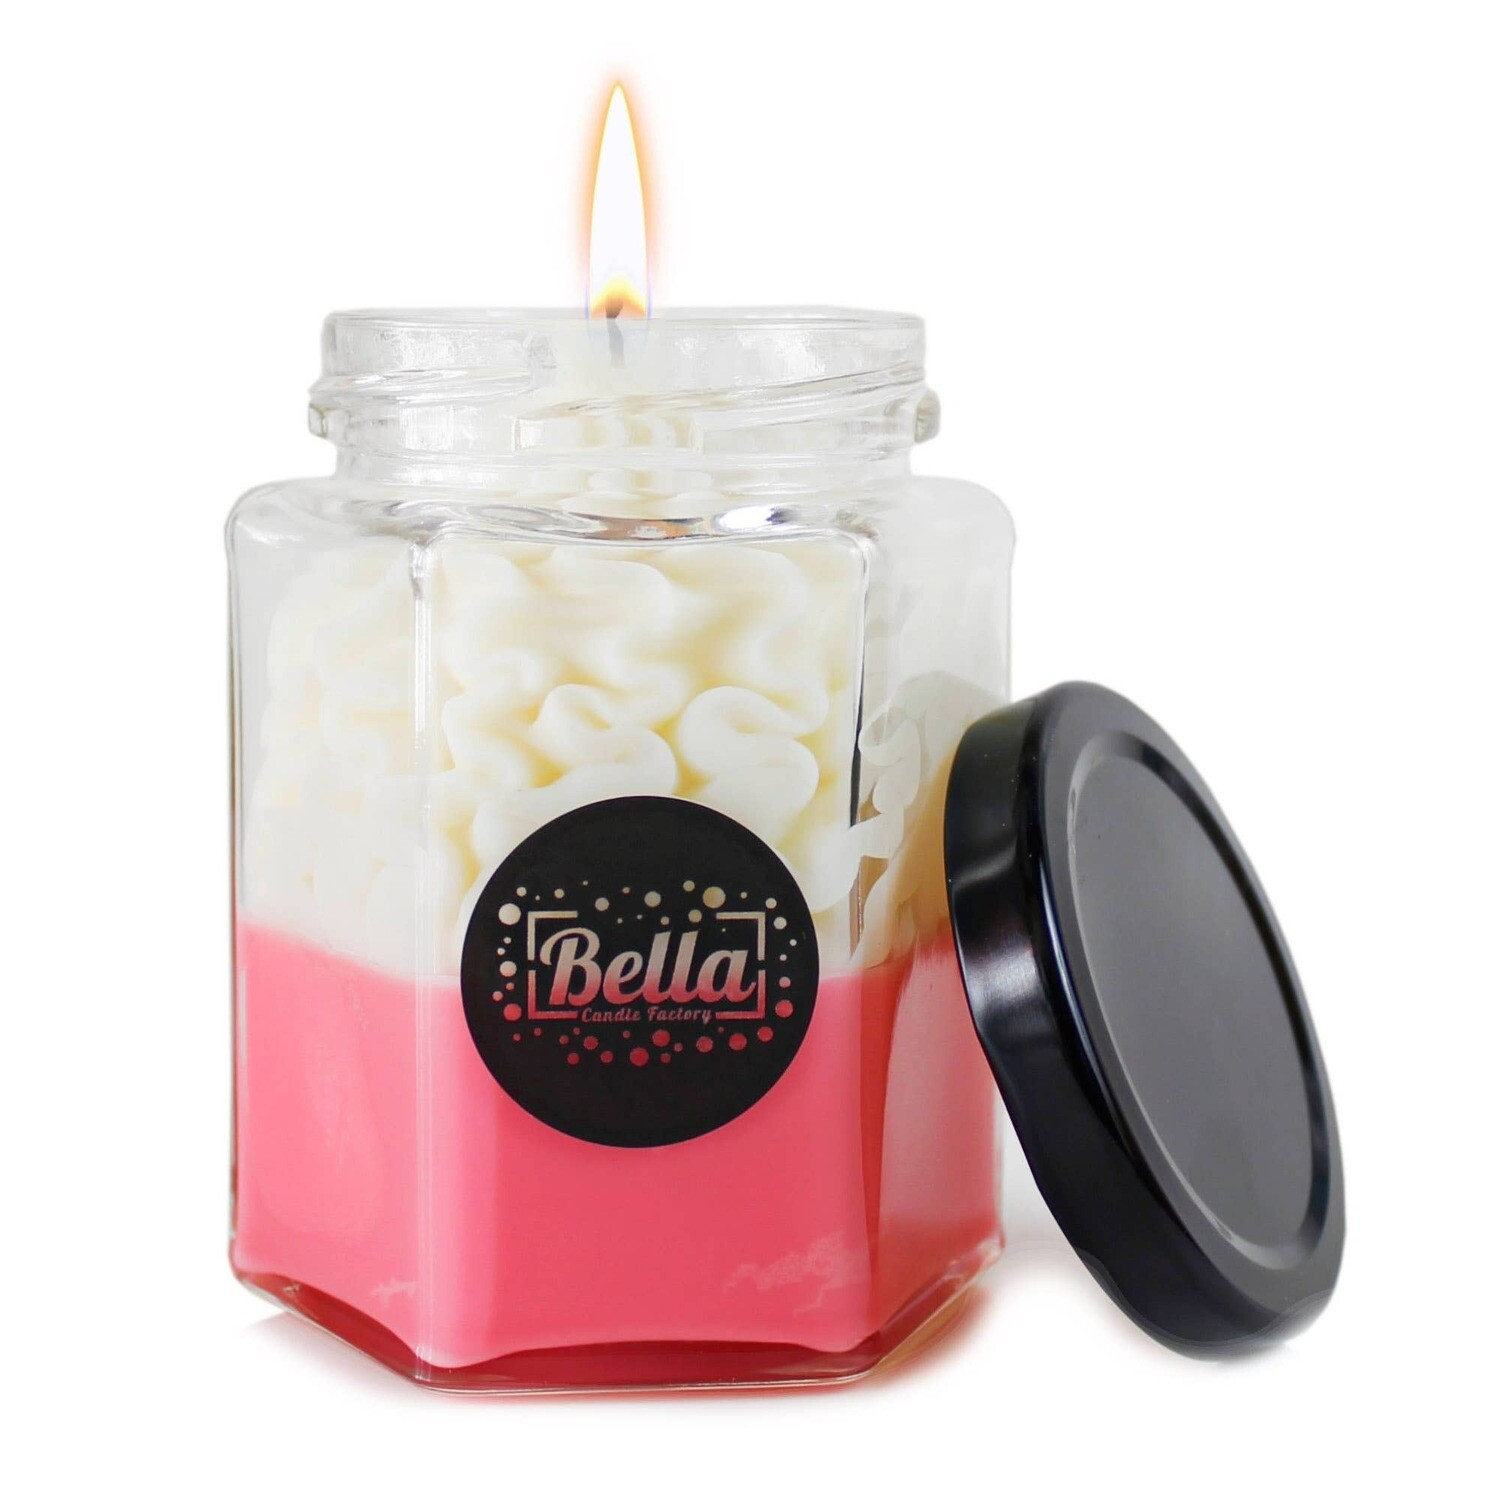 Bella Candle Factory - Pink Dolce: Cinnamon  Scented dessert jar candle